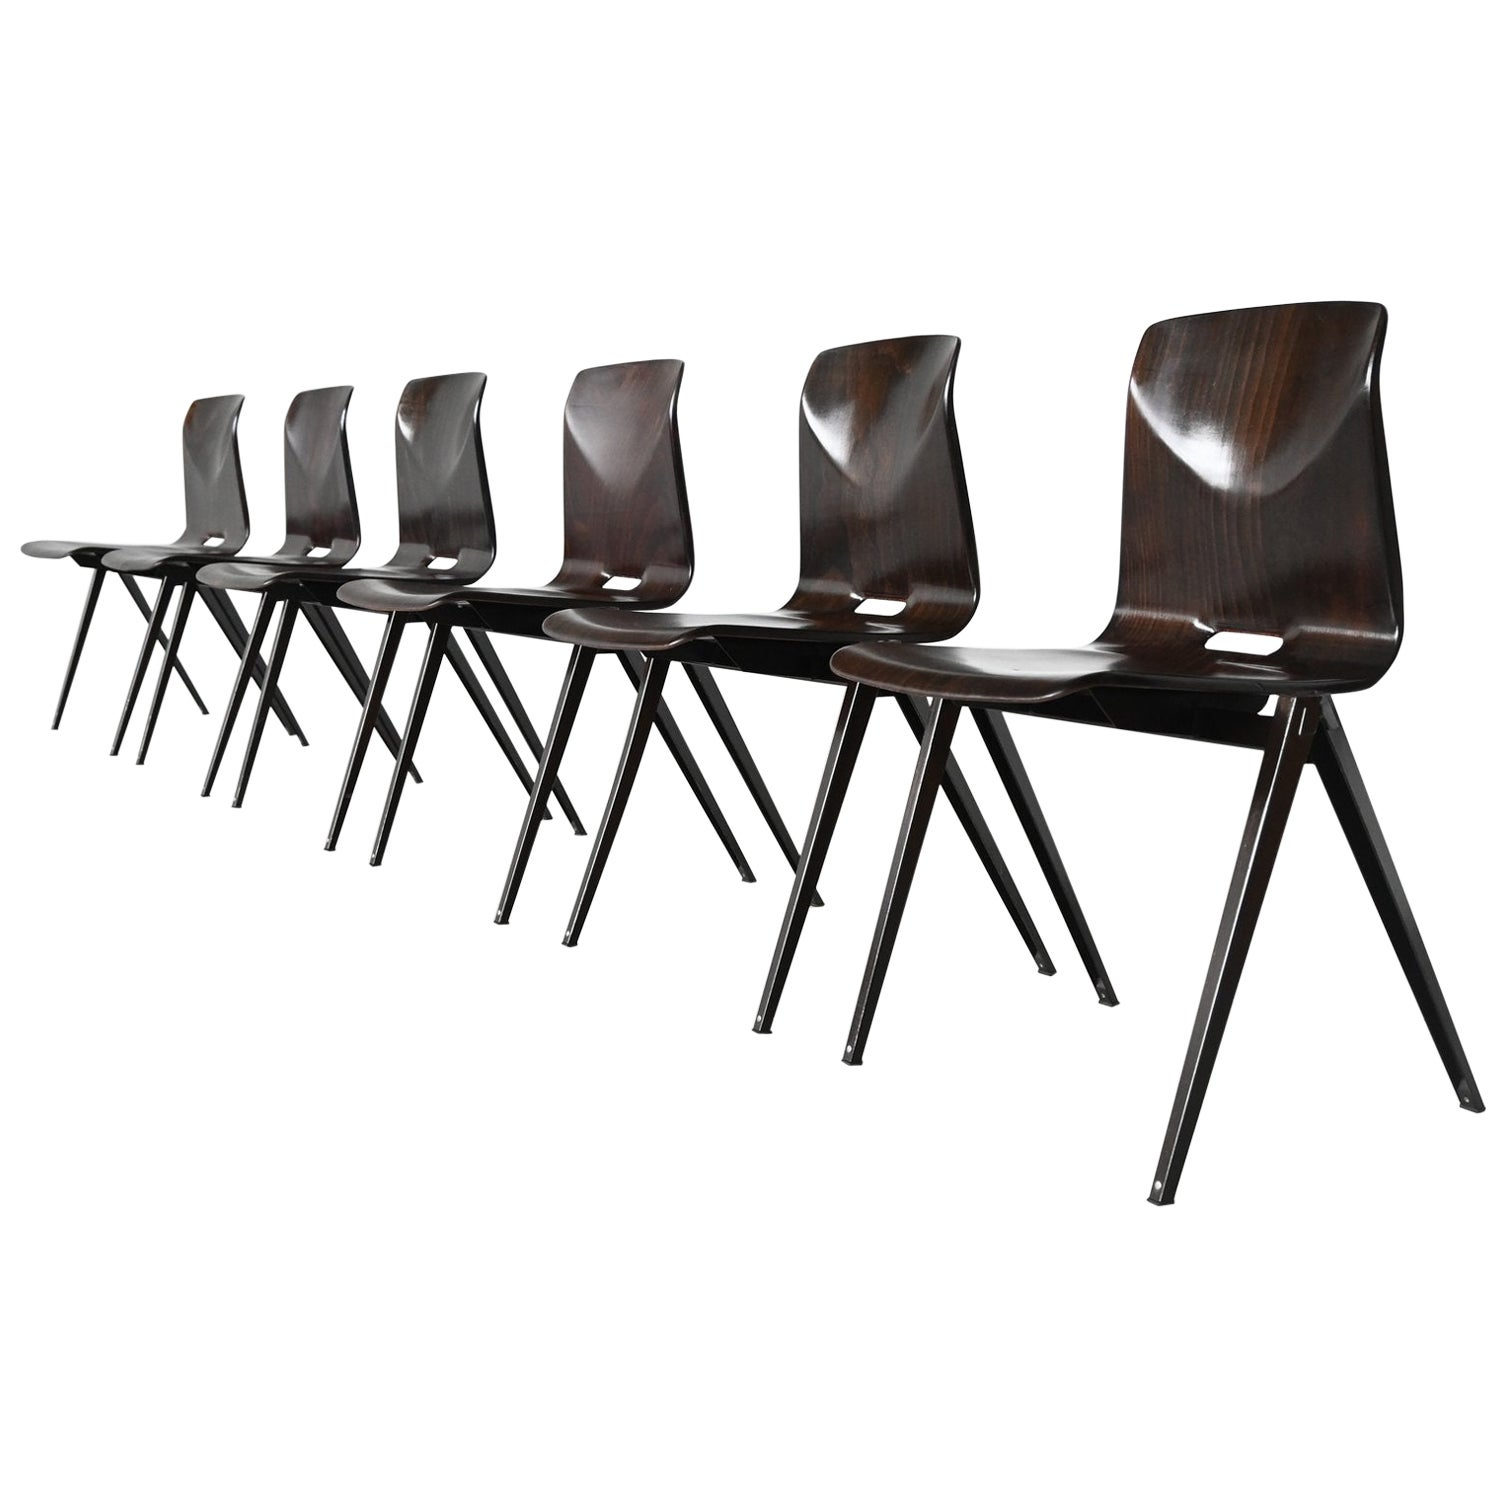 Elmar Flototto Model S22 Stacking Chairs Pagholz, Germany, 1970